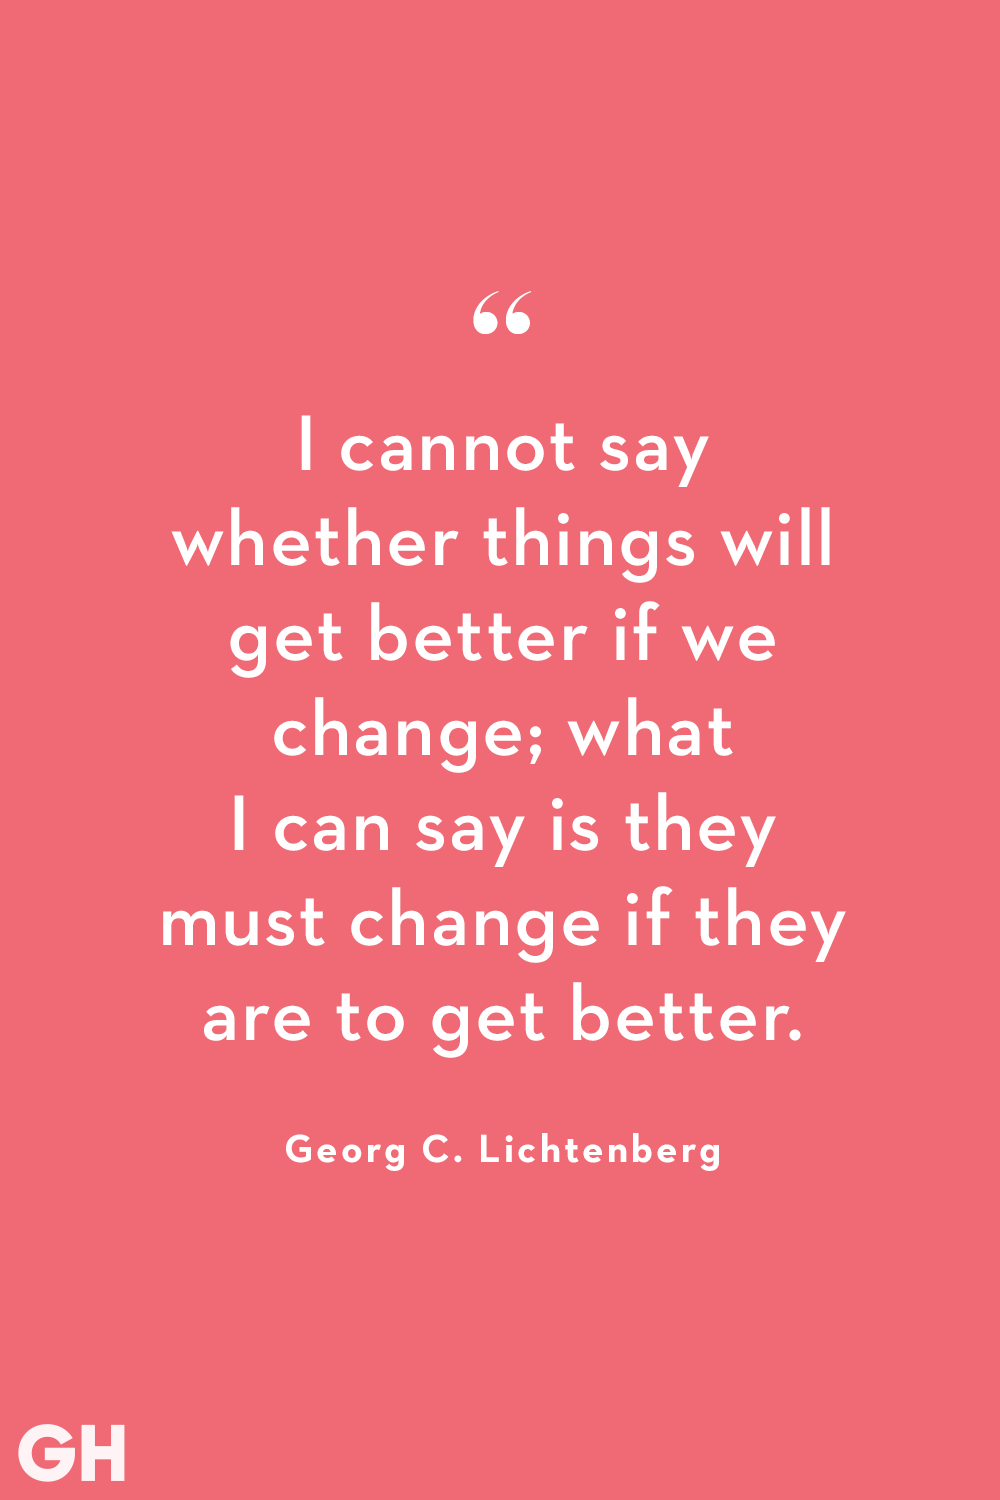 30 Quotes About Change - Wise Words About Transitions